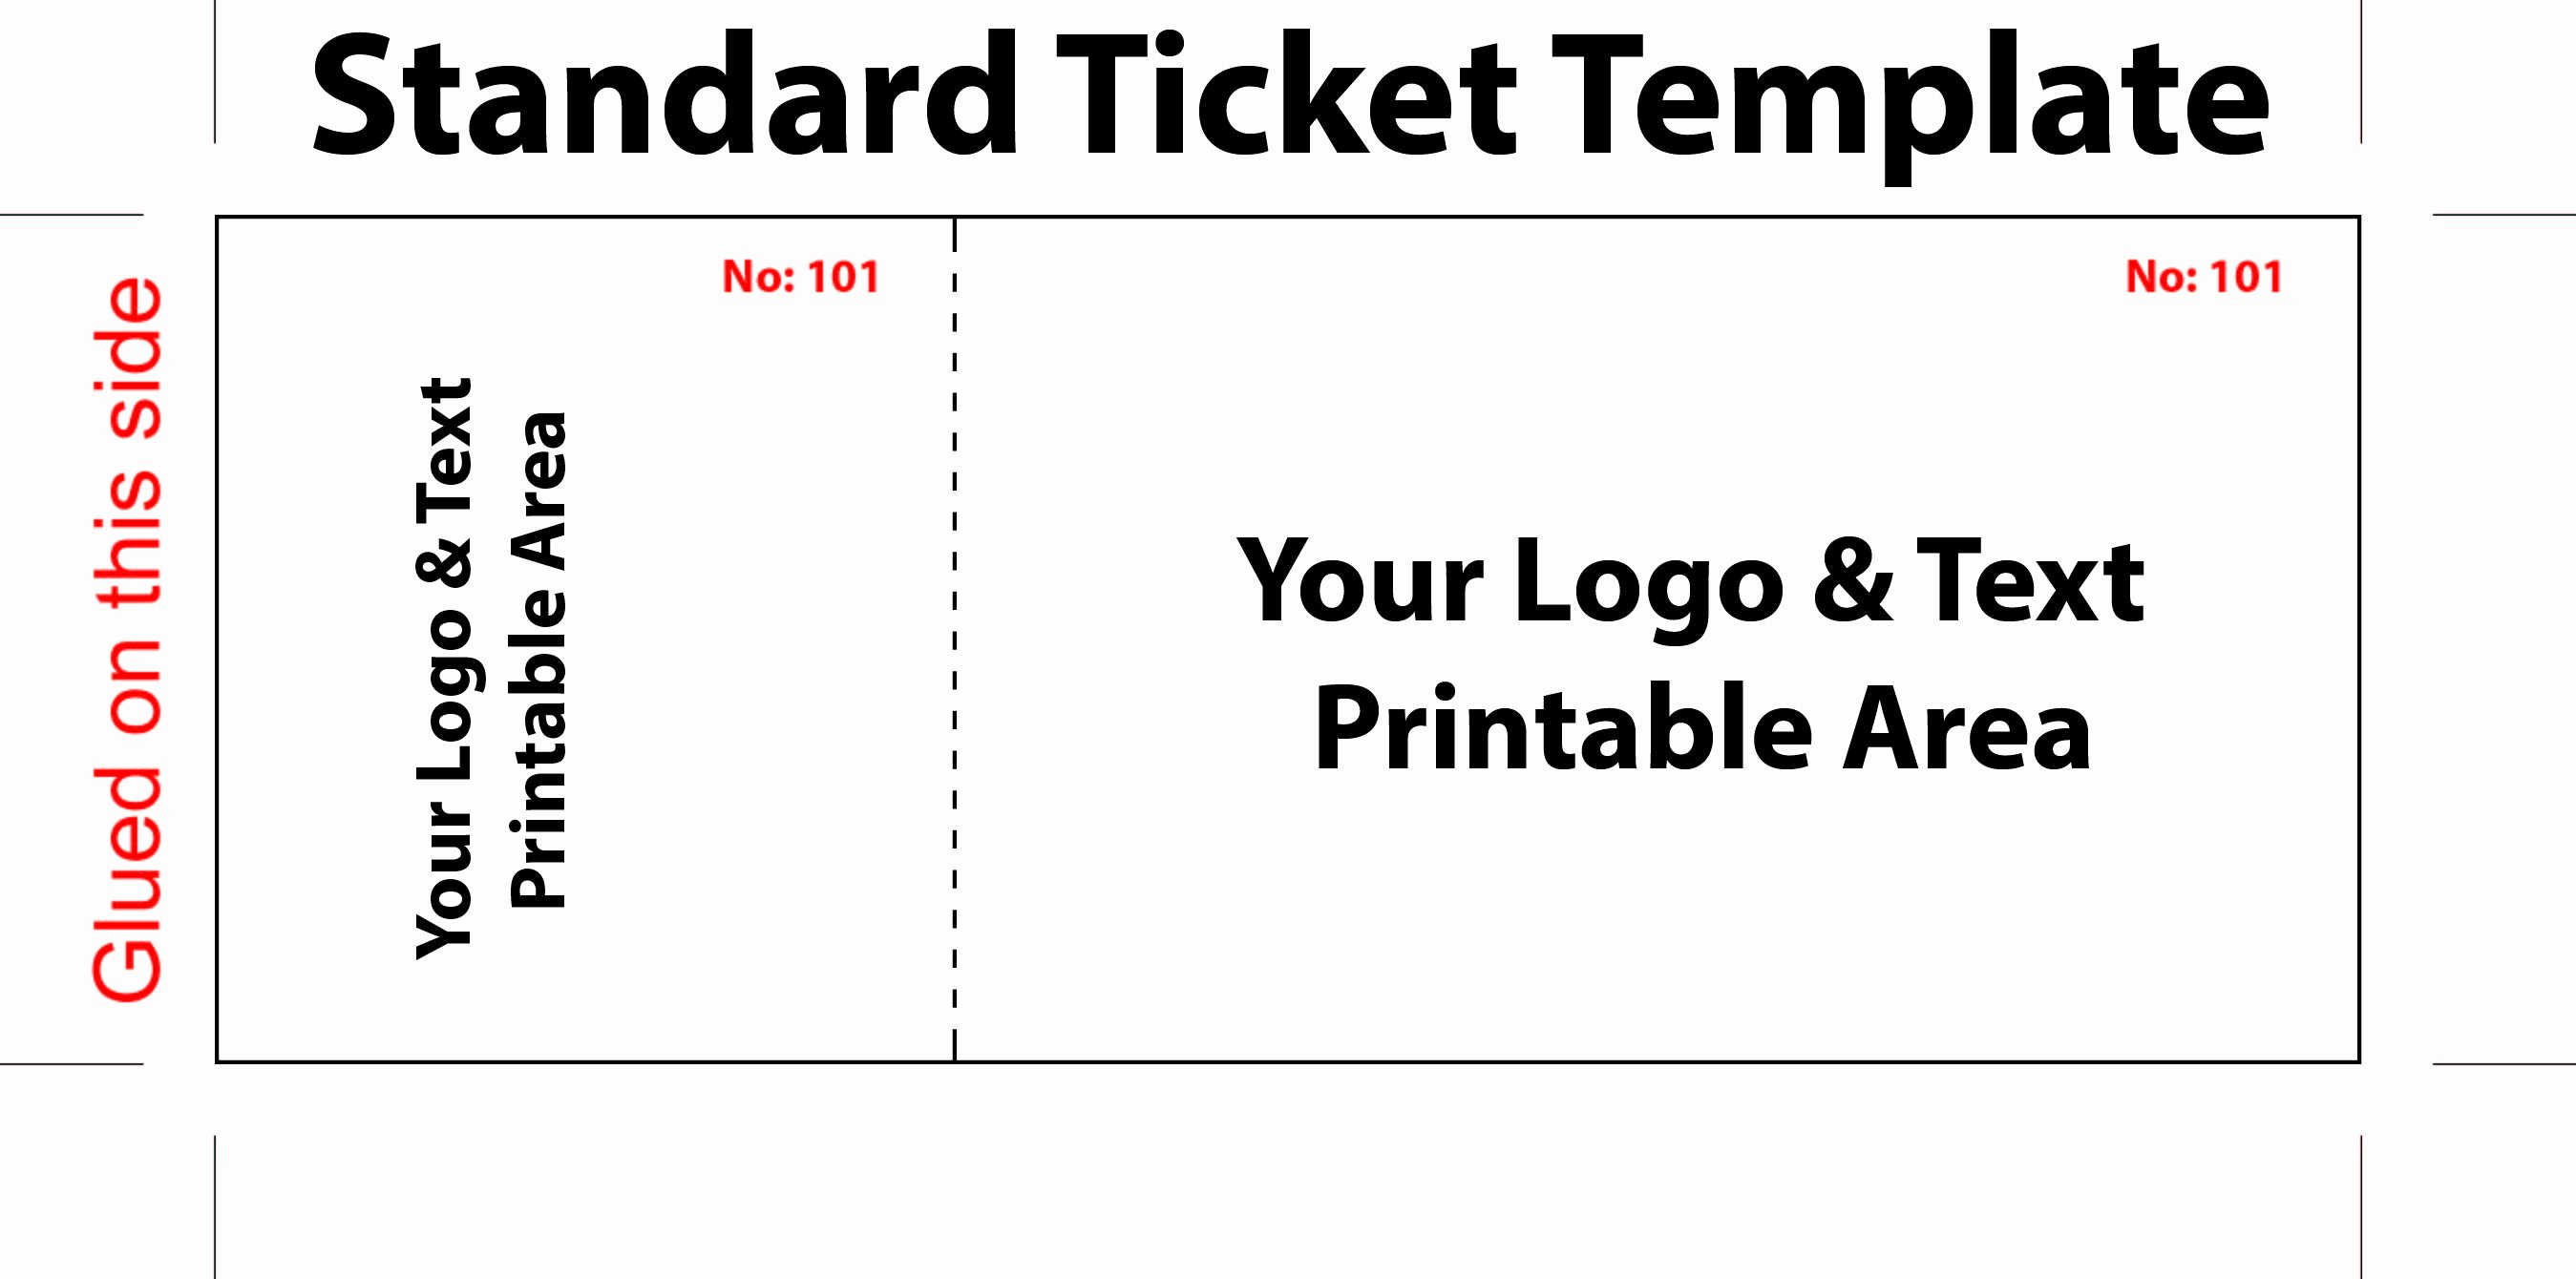 Admission Ticket Template Free Lovely Free Editable Standard Ticket Template Example for Concert